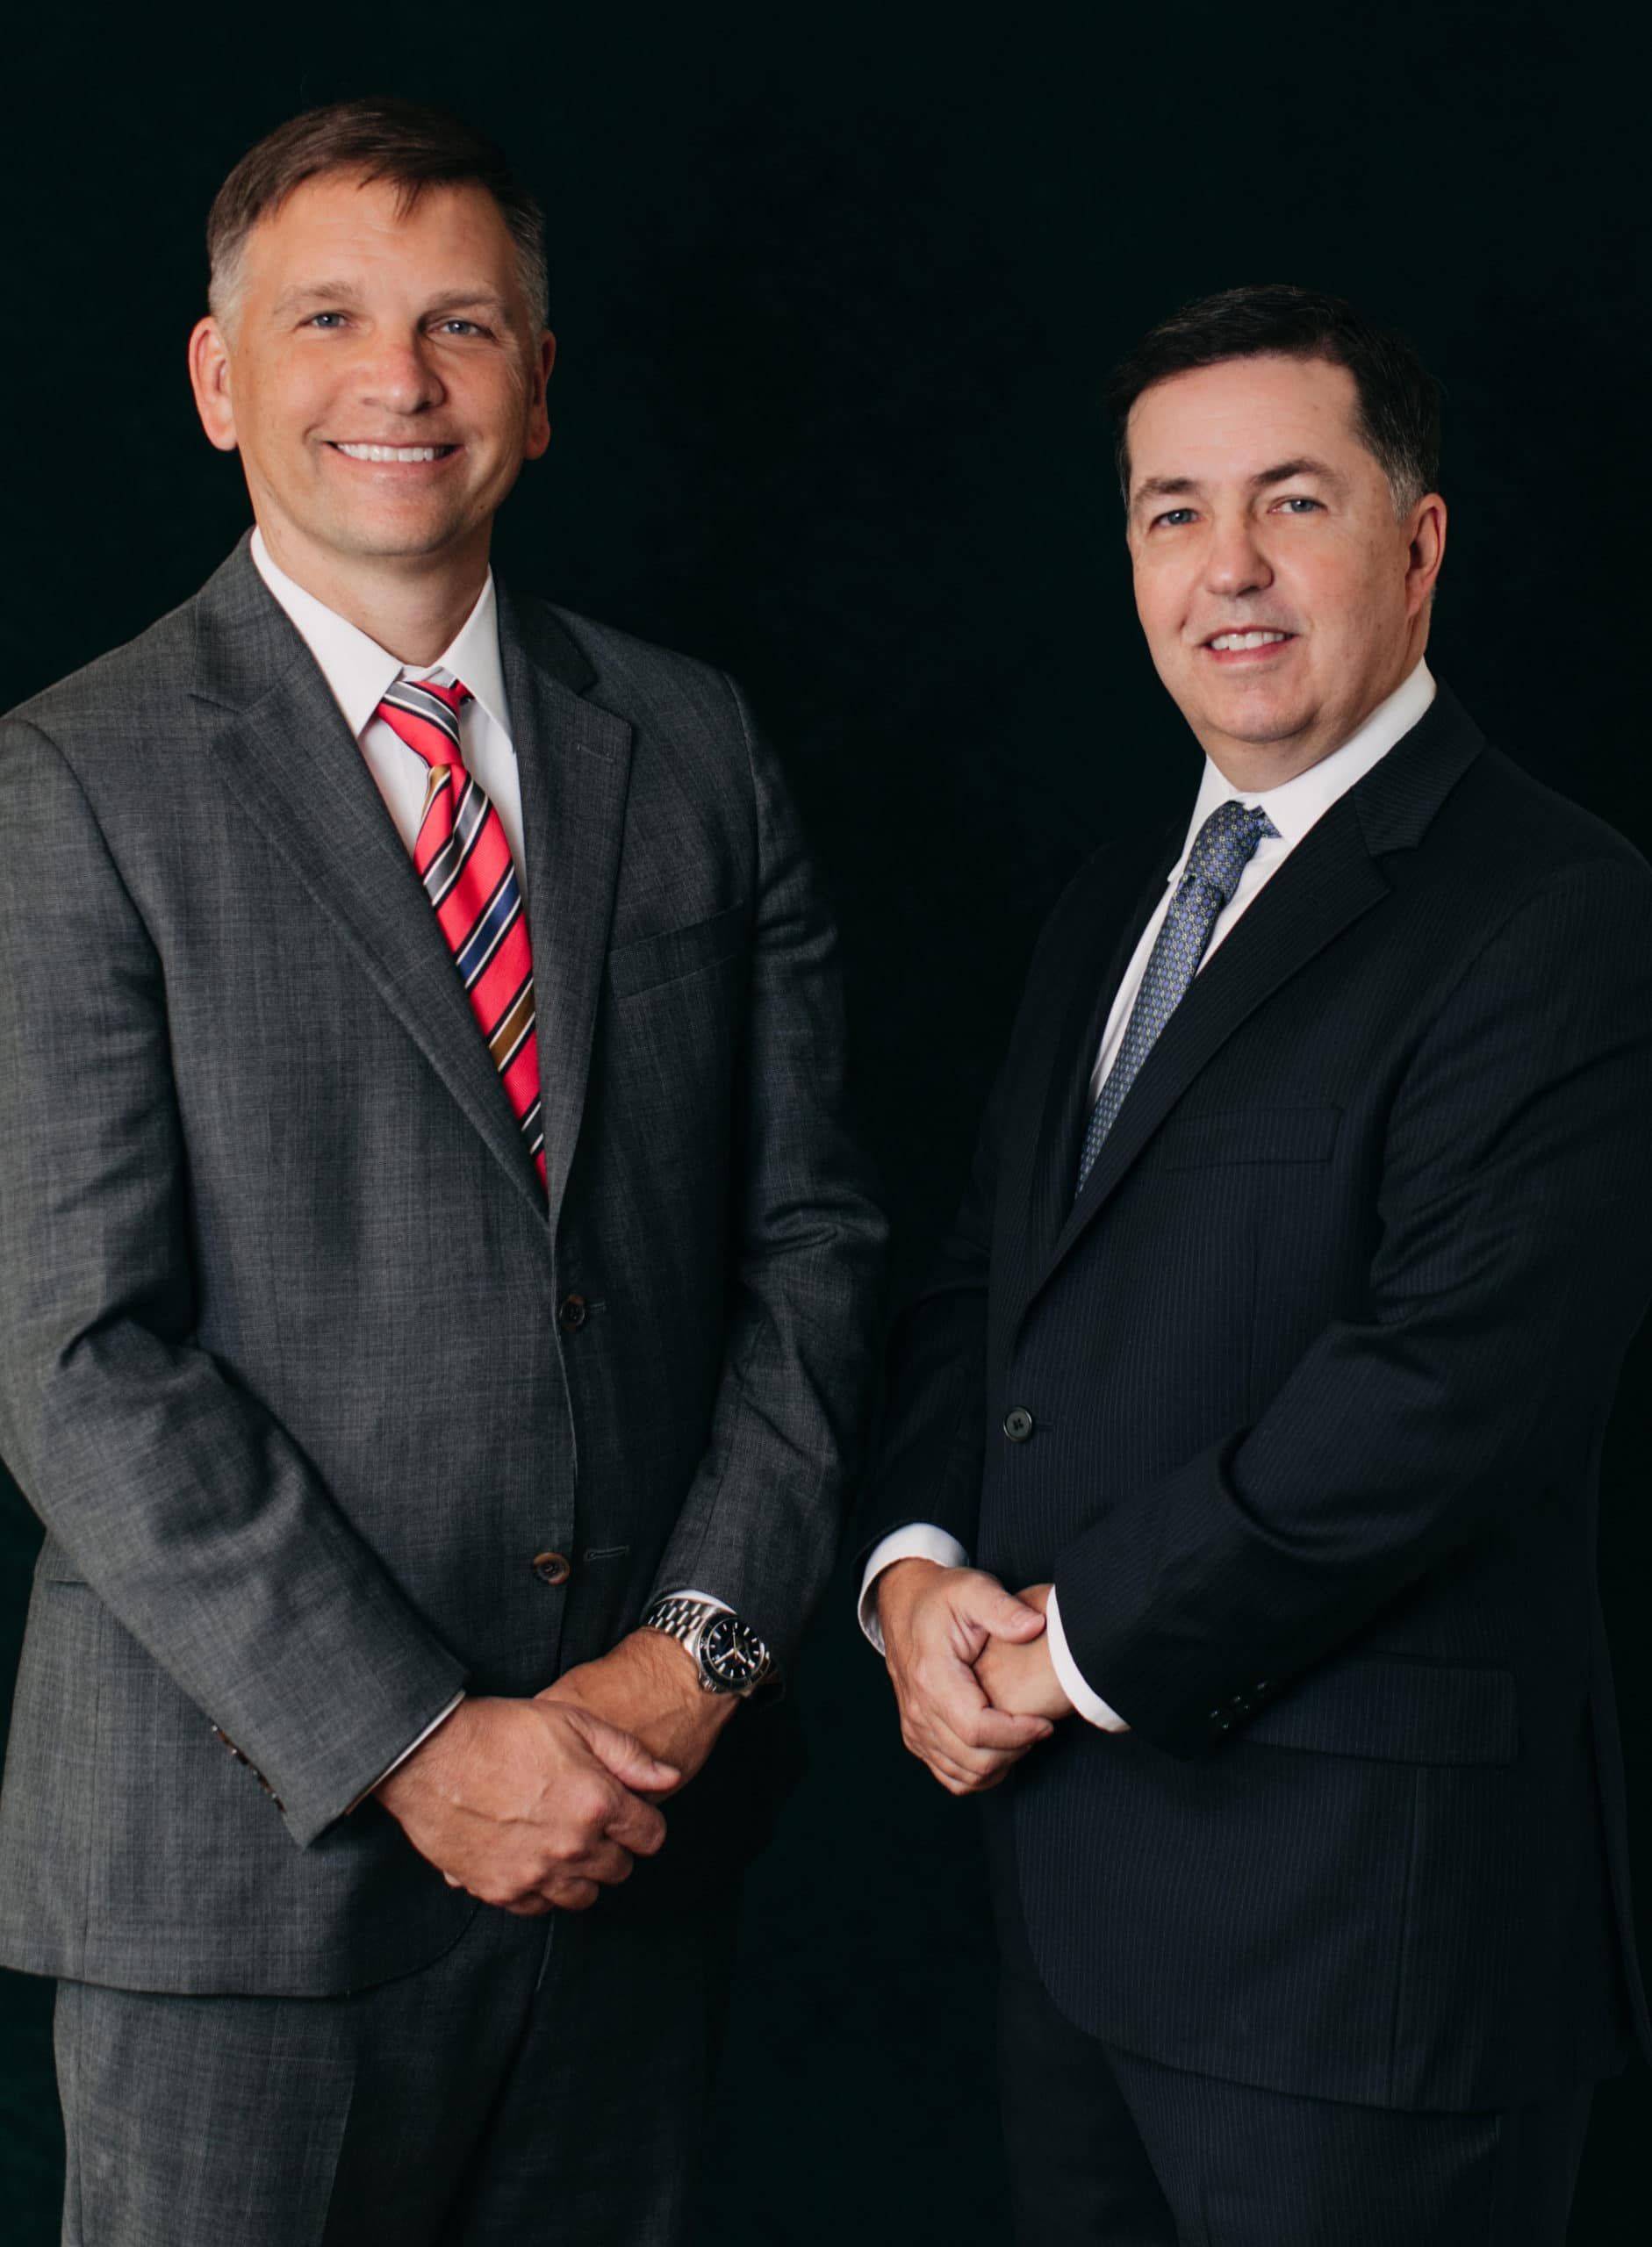 Clint Criminal Attorneys Broden and Mick Mickelsen